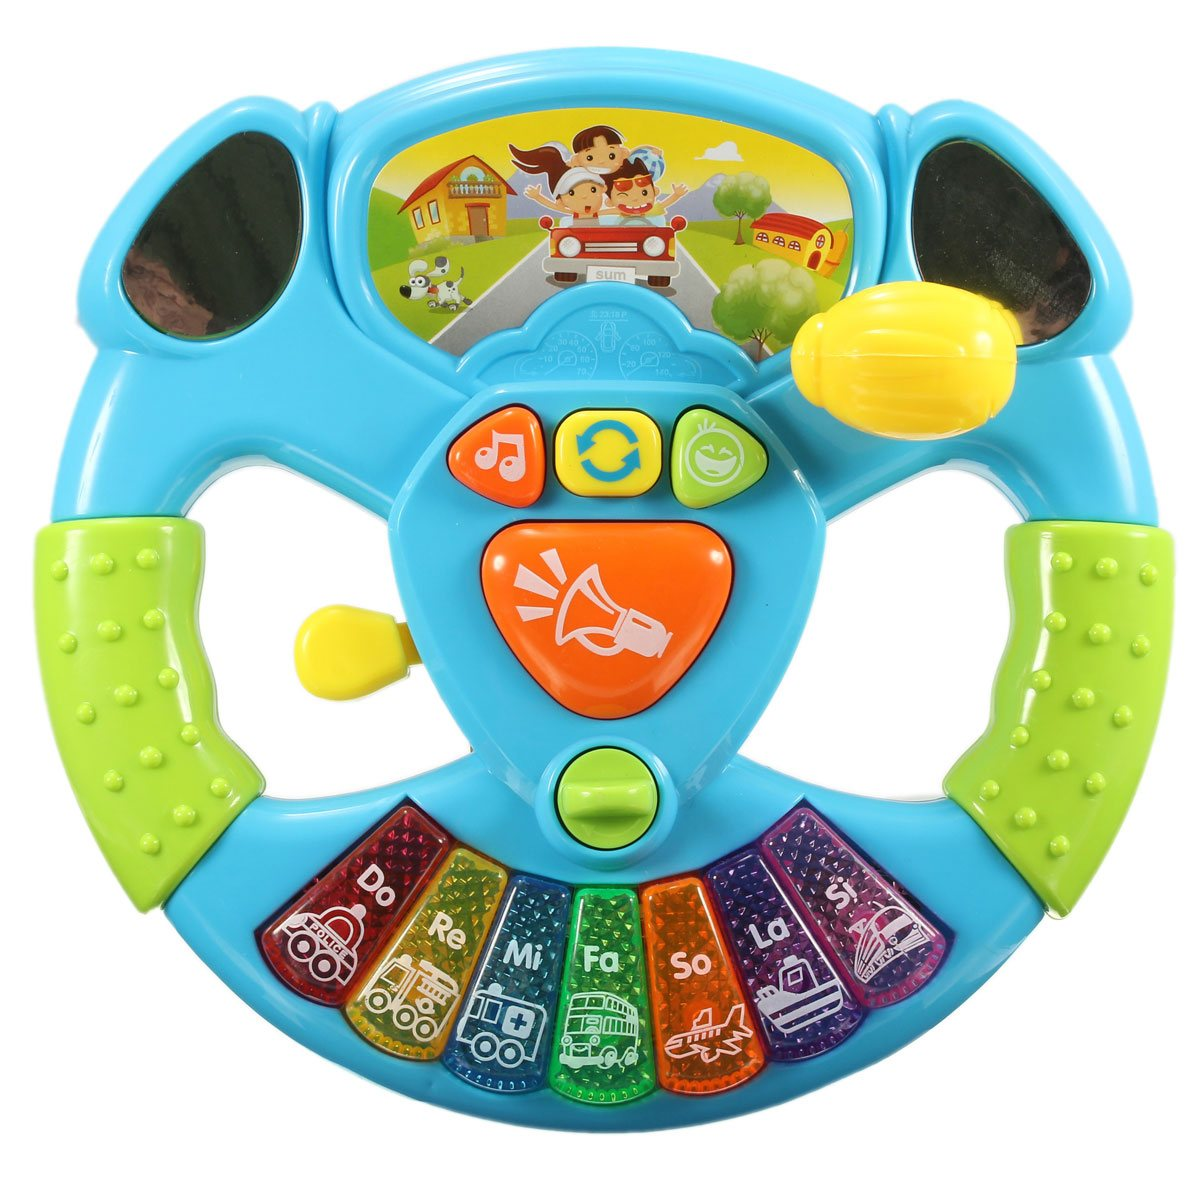 Baby Music Lights Transportation Tools Education Intelligence Toys Multifunctional Steering Wheel Toys with Electronic Button